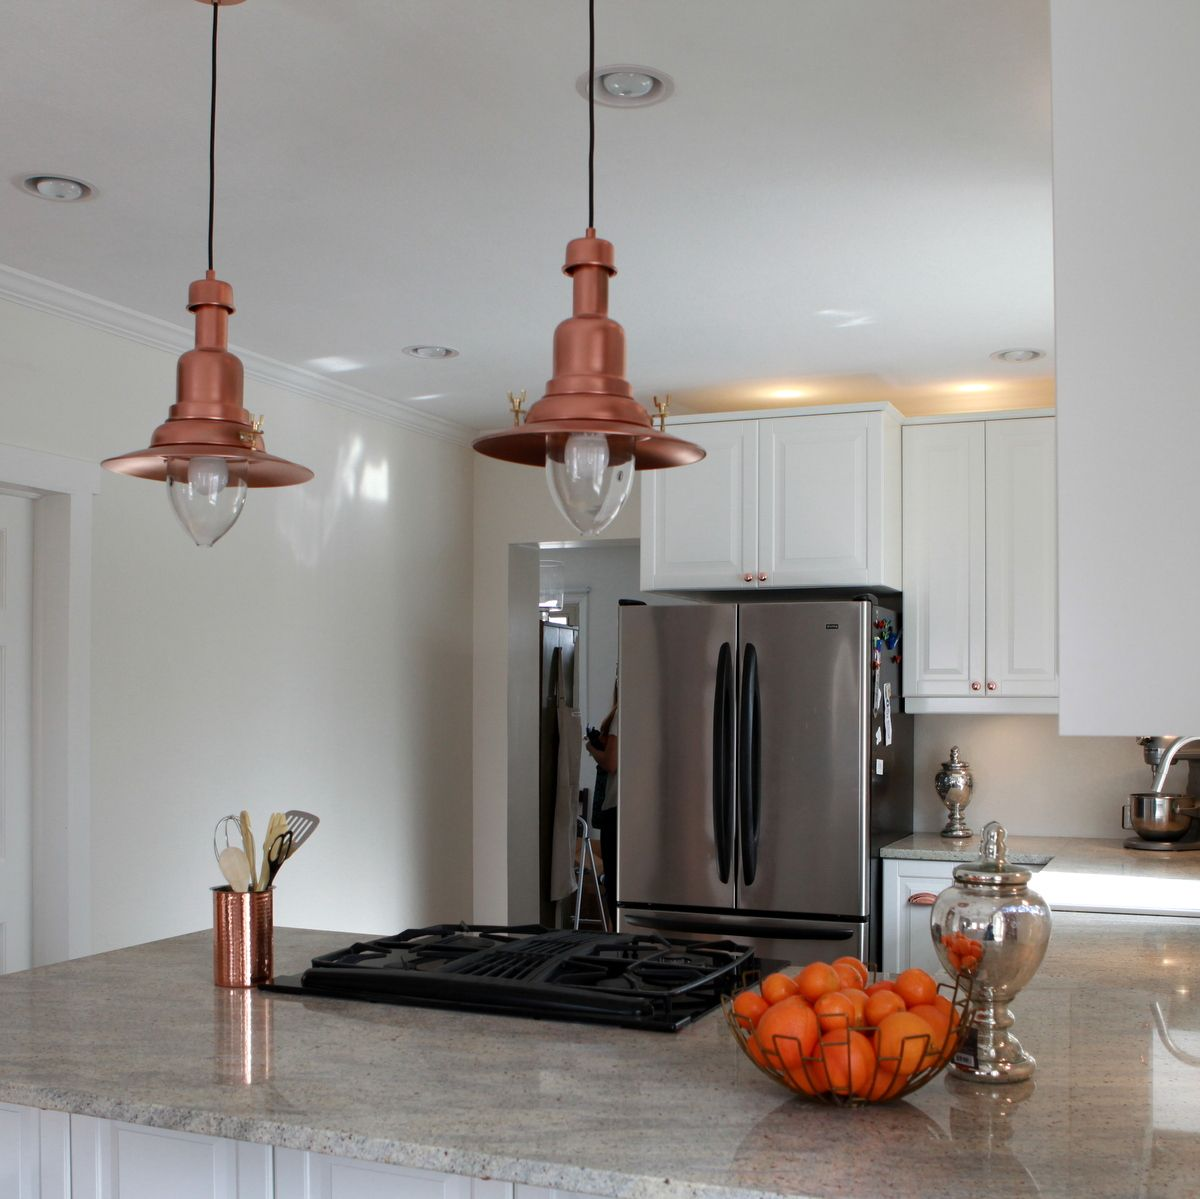 Copper Pendant Lights Kitchen Ikea Hack How To Turn An Ottava 3000 Light Into A Copper Barn